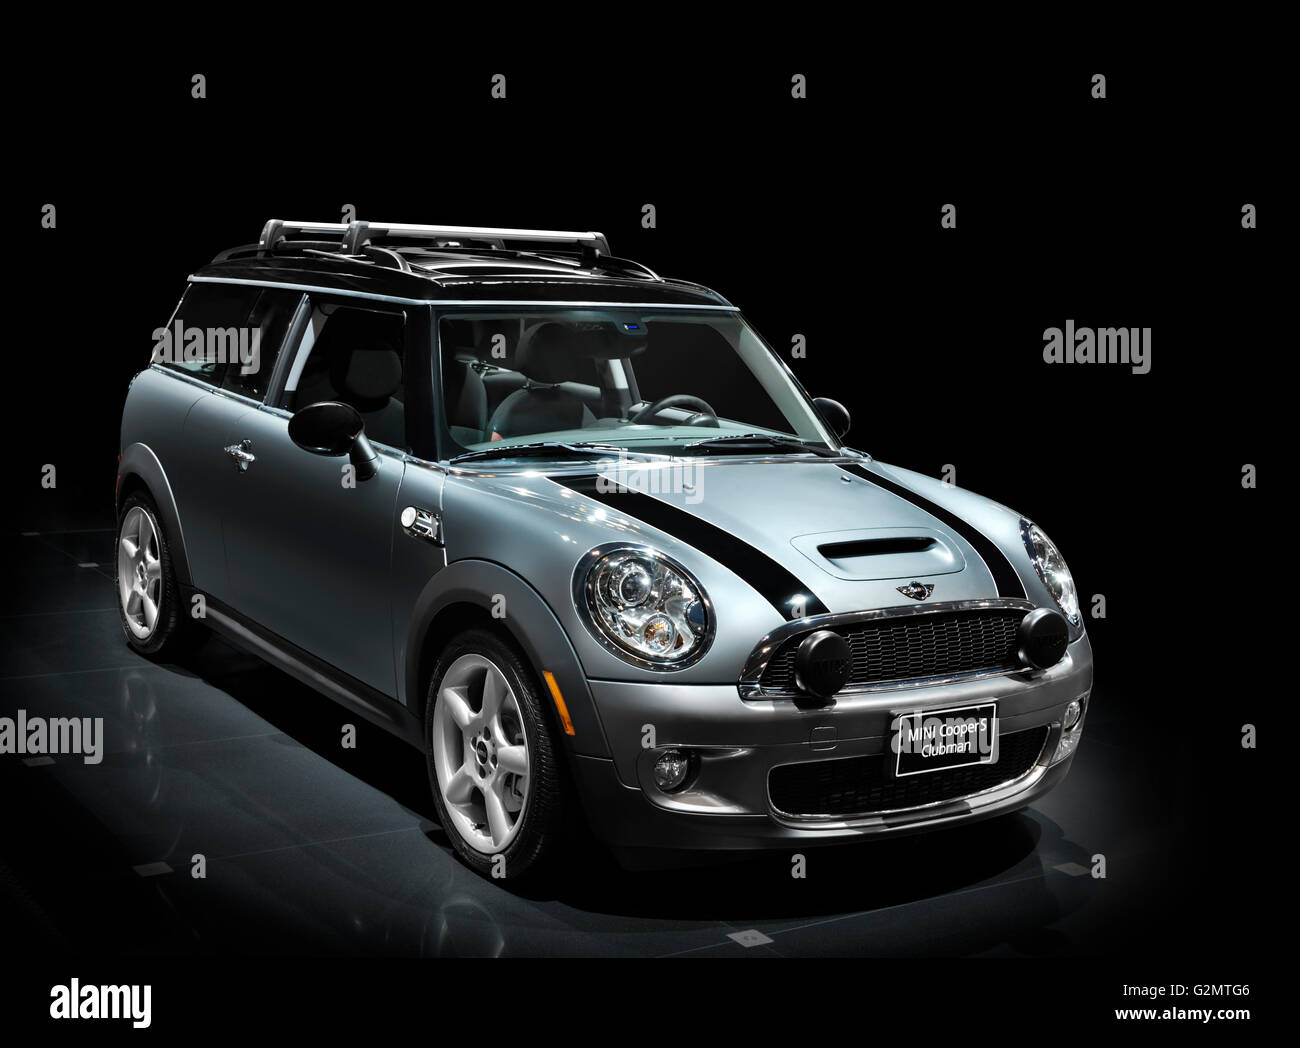 2009 Mini Cooper S Clubman Banque Dimages Photo Stock 104949830